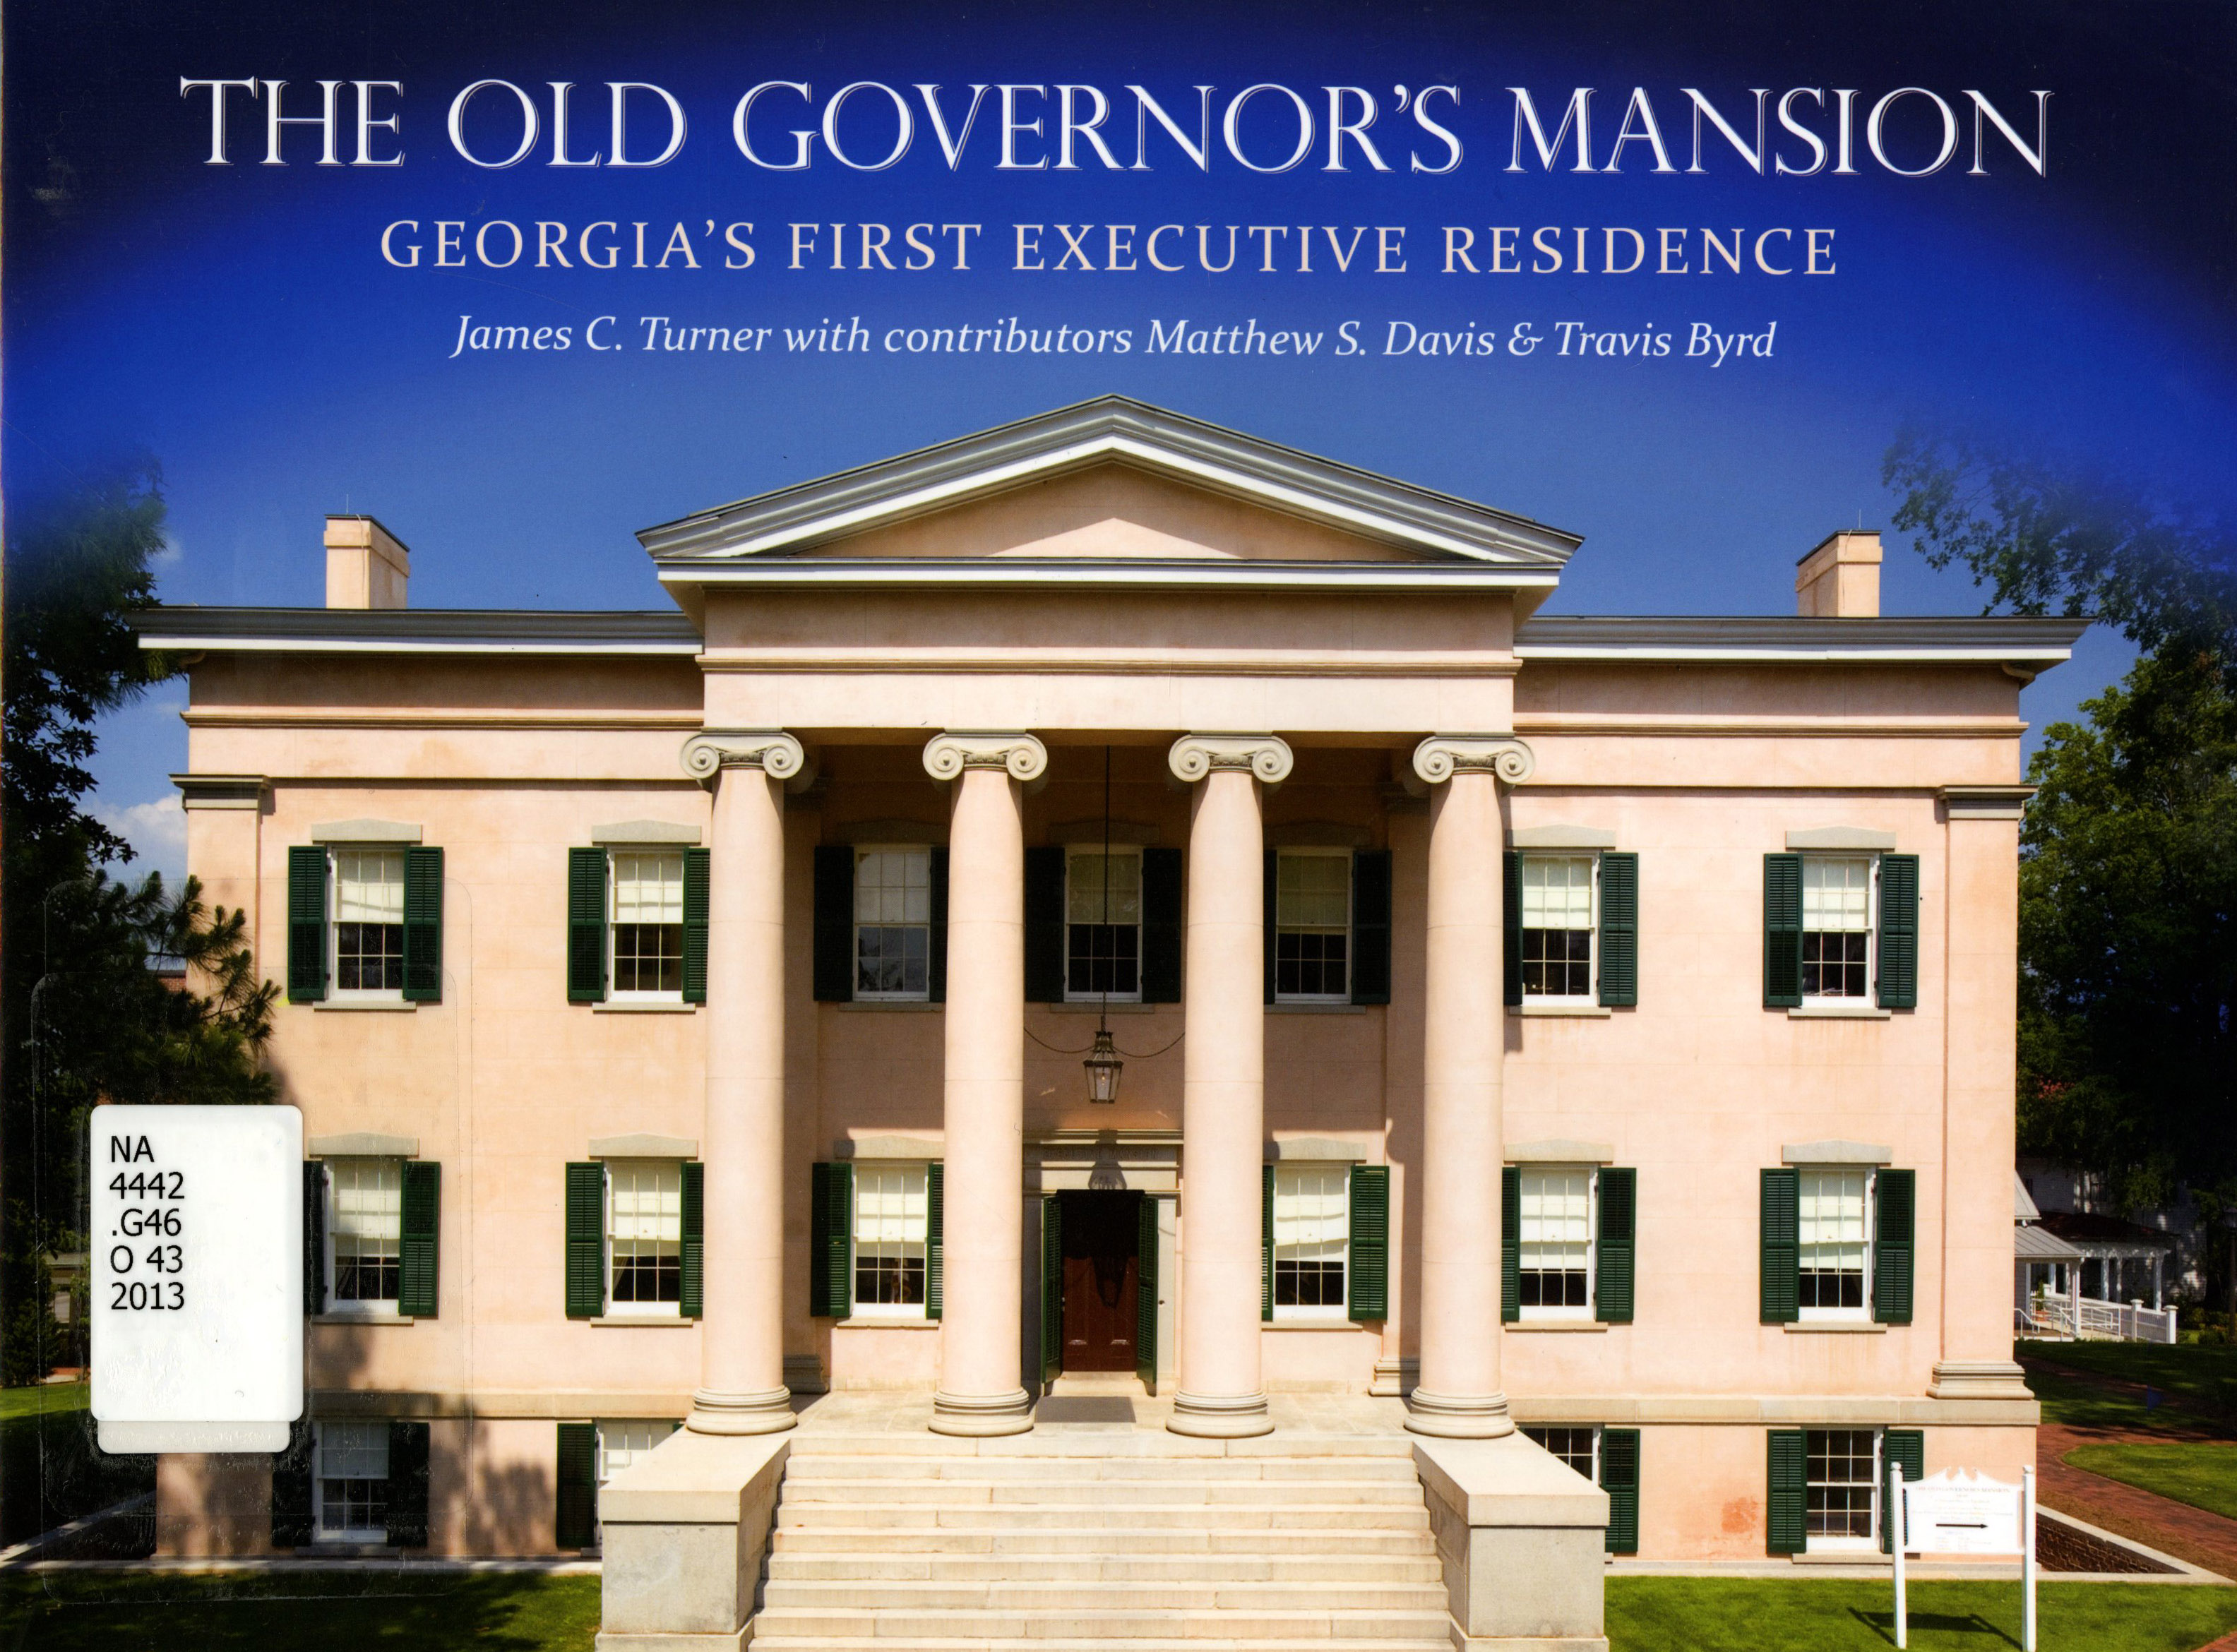 The Old Governors Mansion